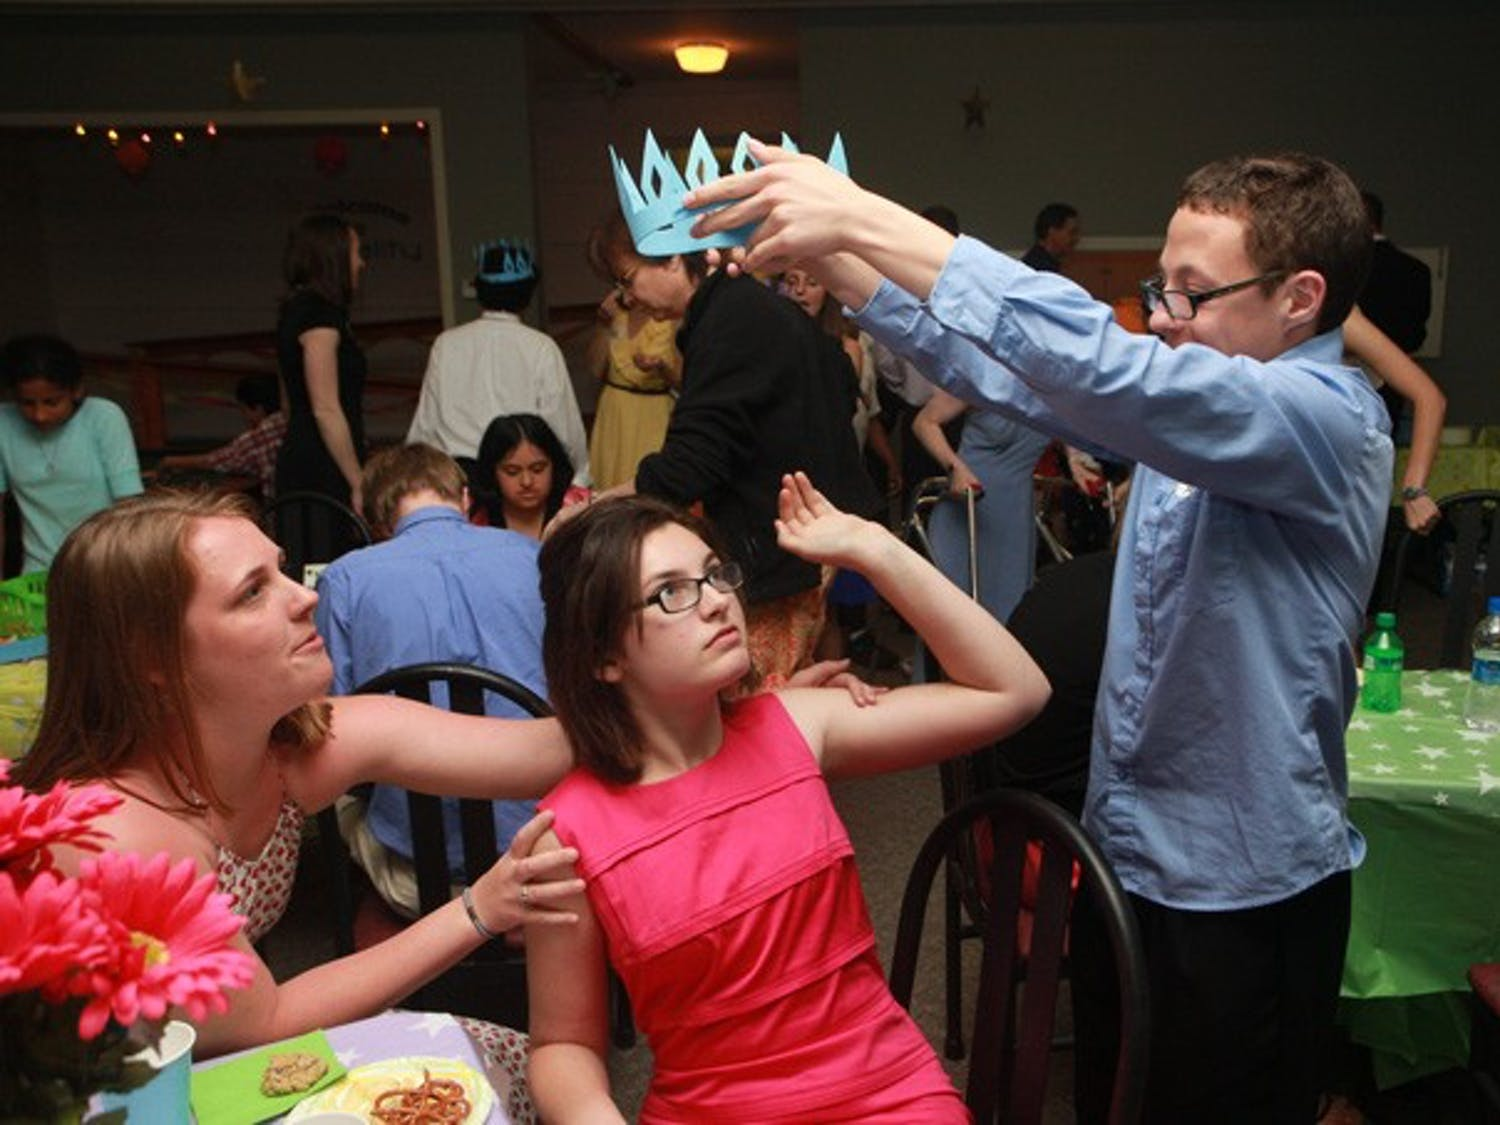 While taking a break from the festivities, Aaron attempts to crown his date, Zoe.